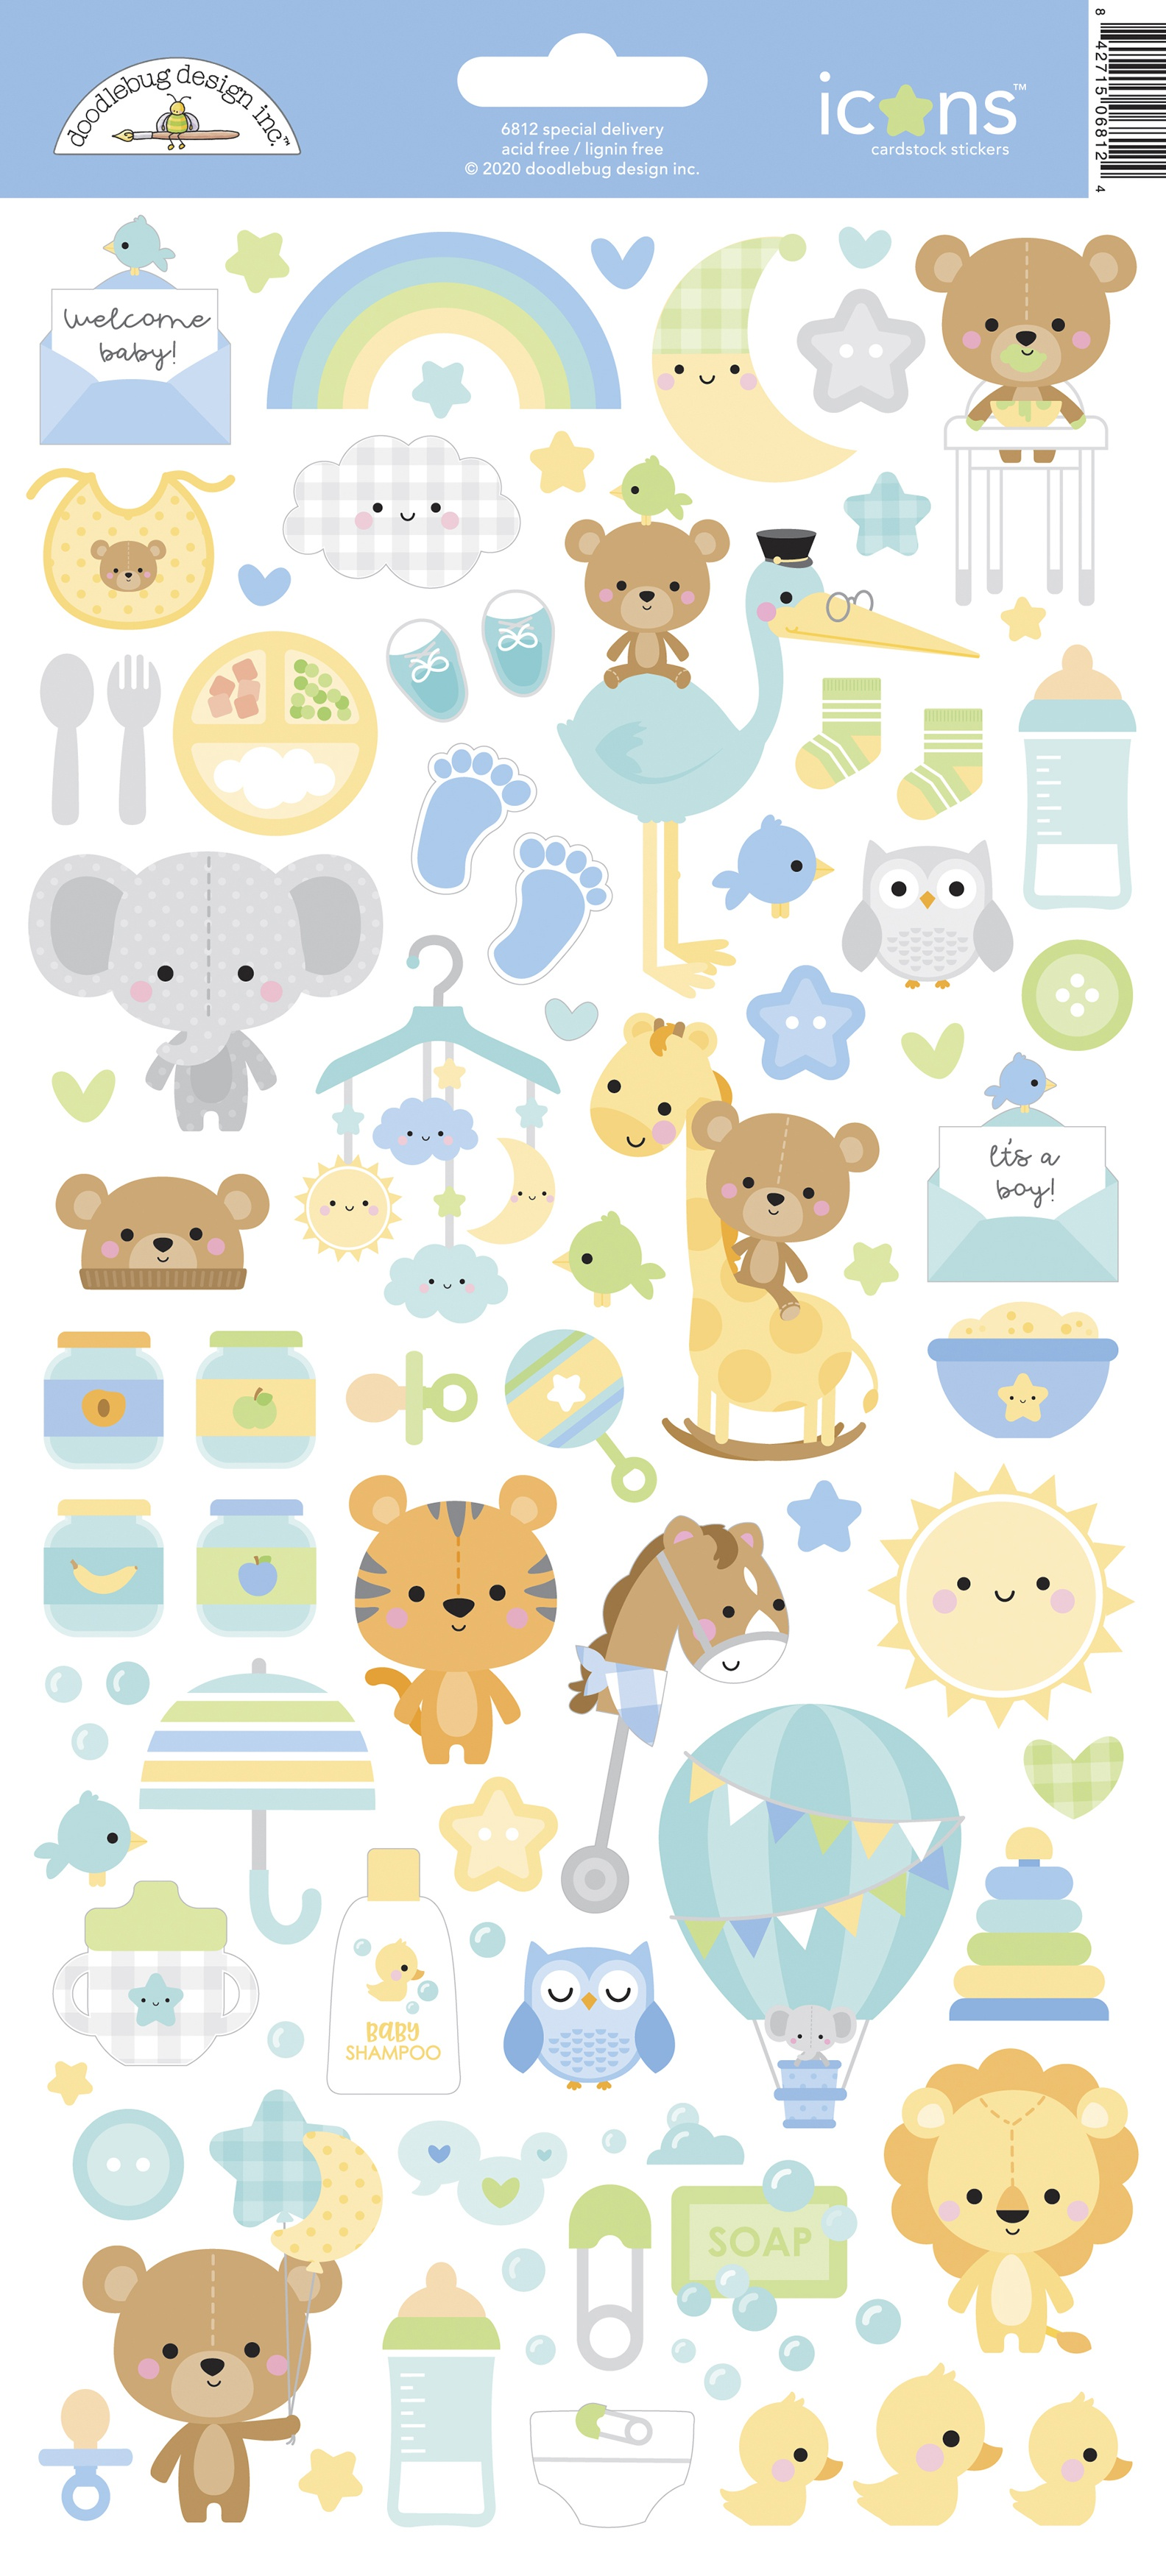 ^Doodlebug - Special Delivery - Icons Cardstock Stickers